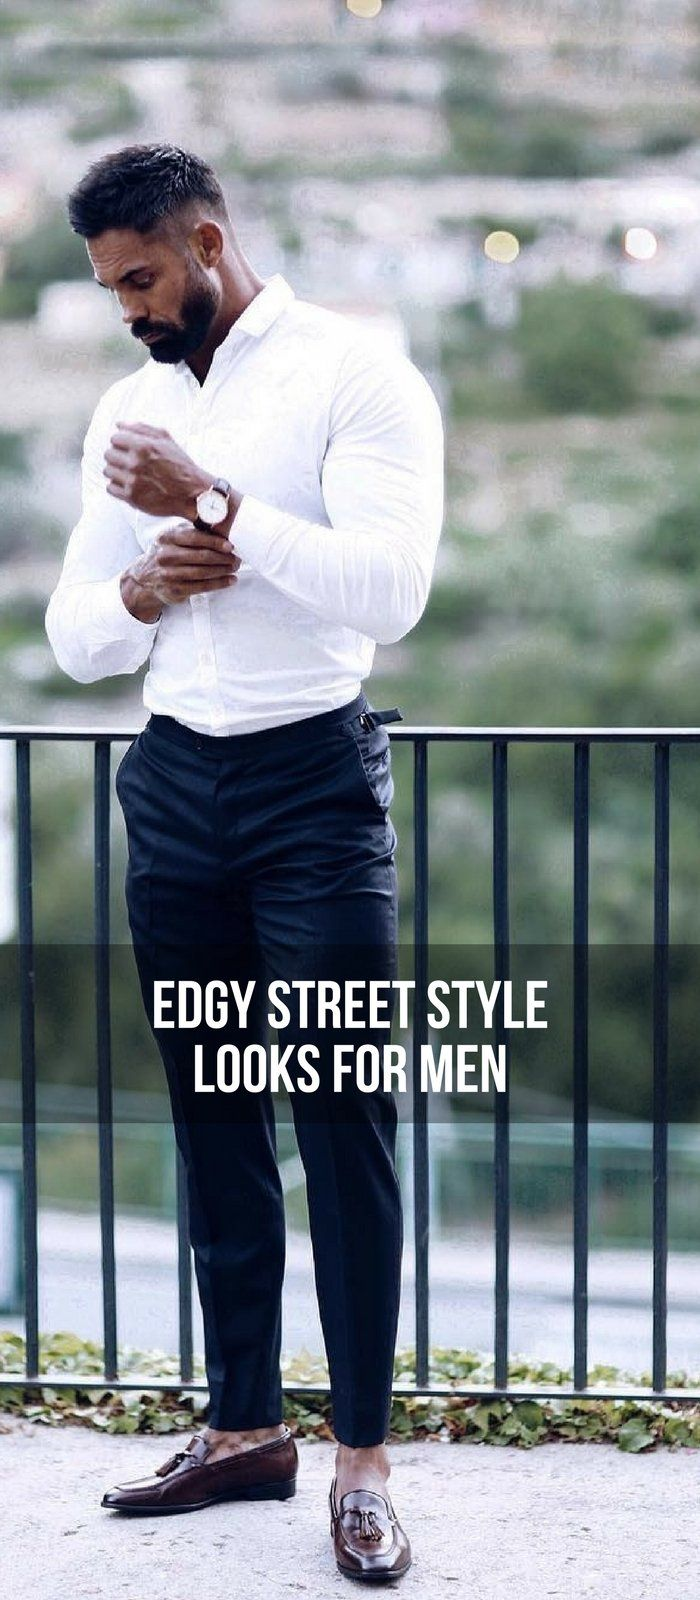 16 Edgy Street Style Looks To Help You Dress Sharp – LIFESTYLE BY PS